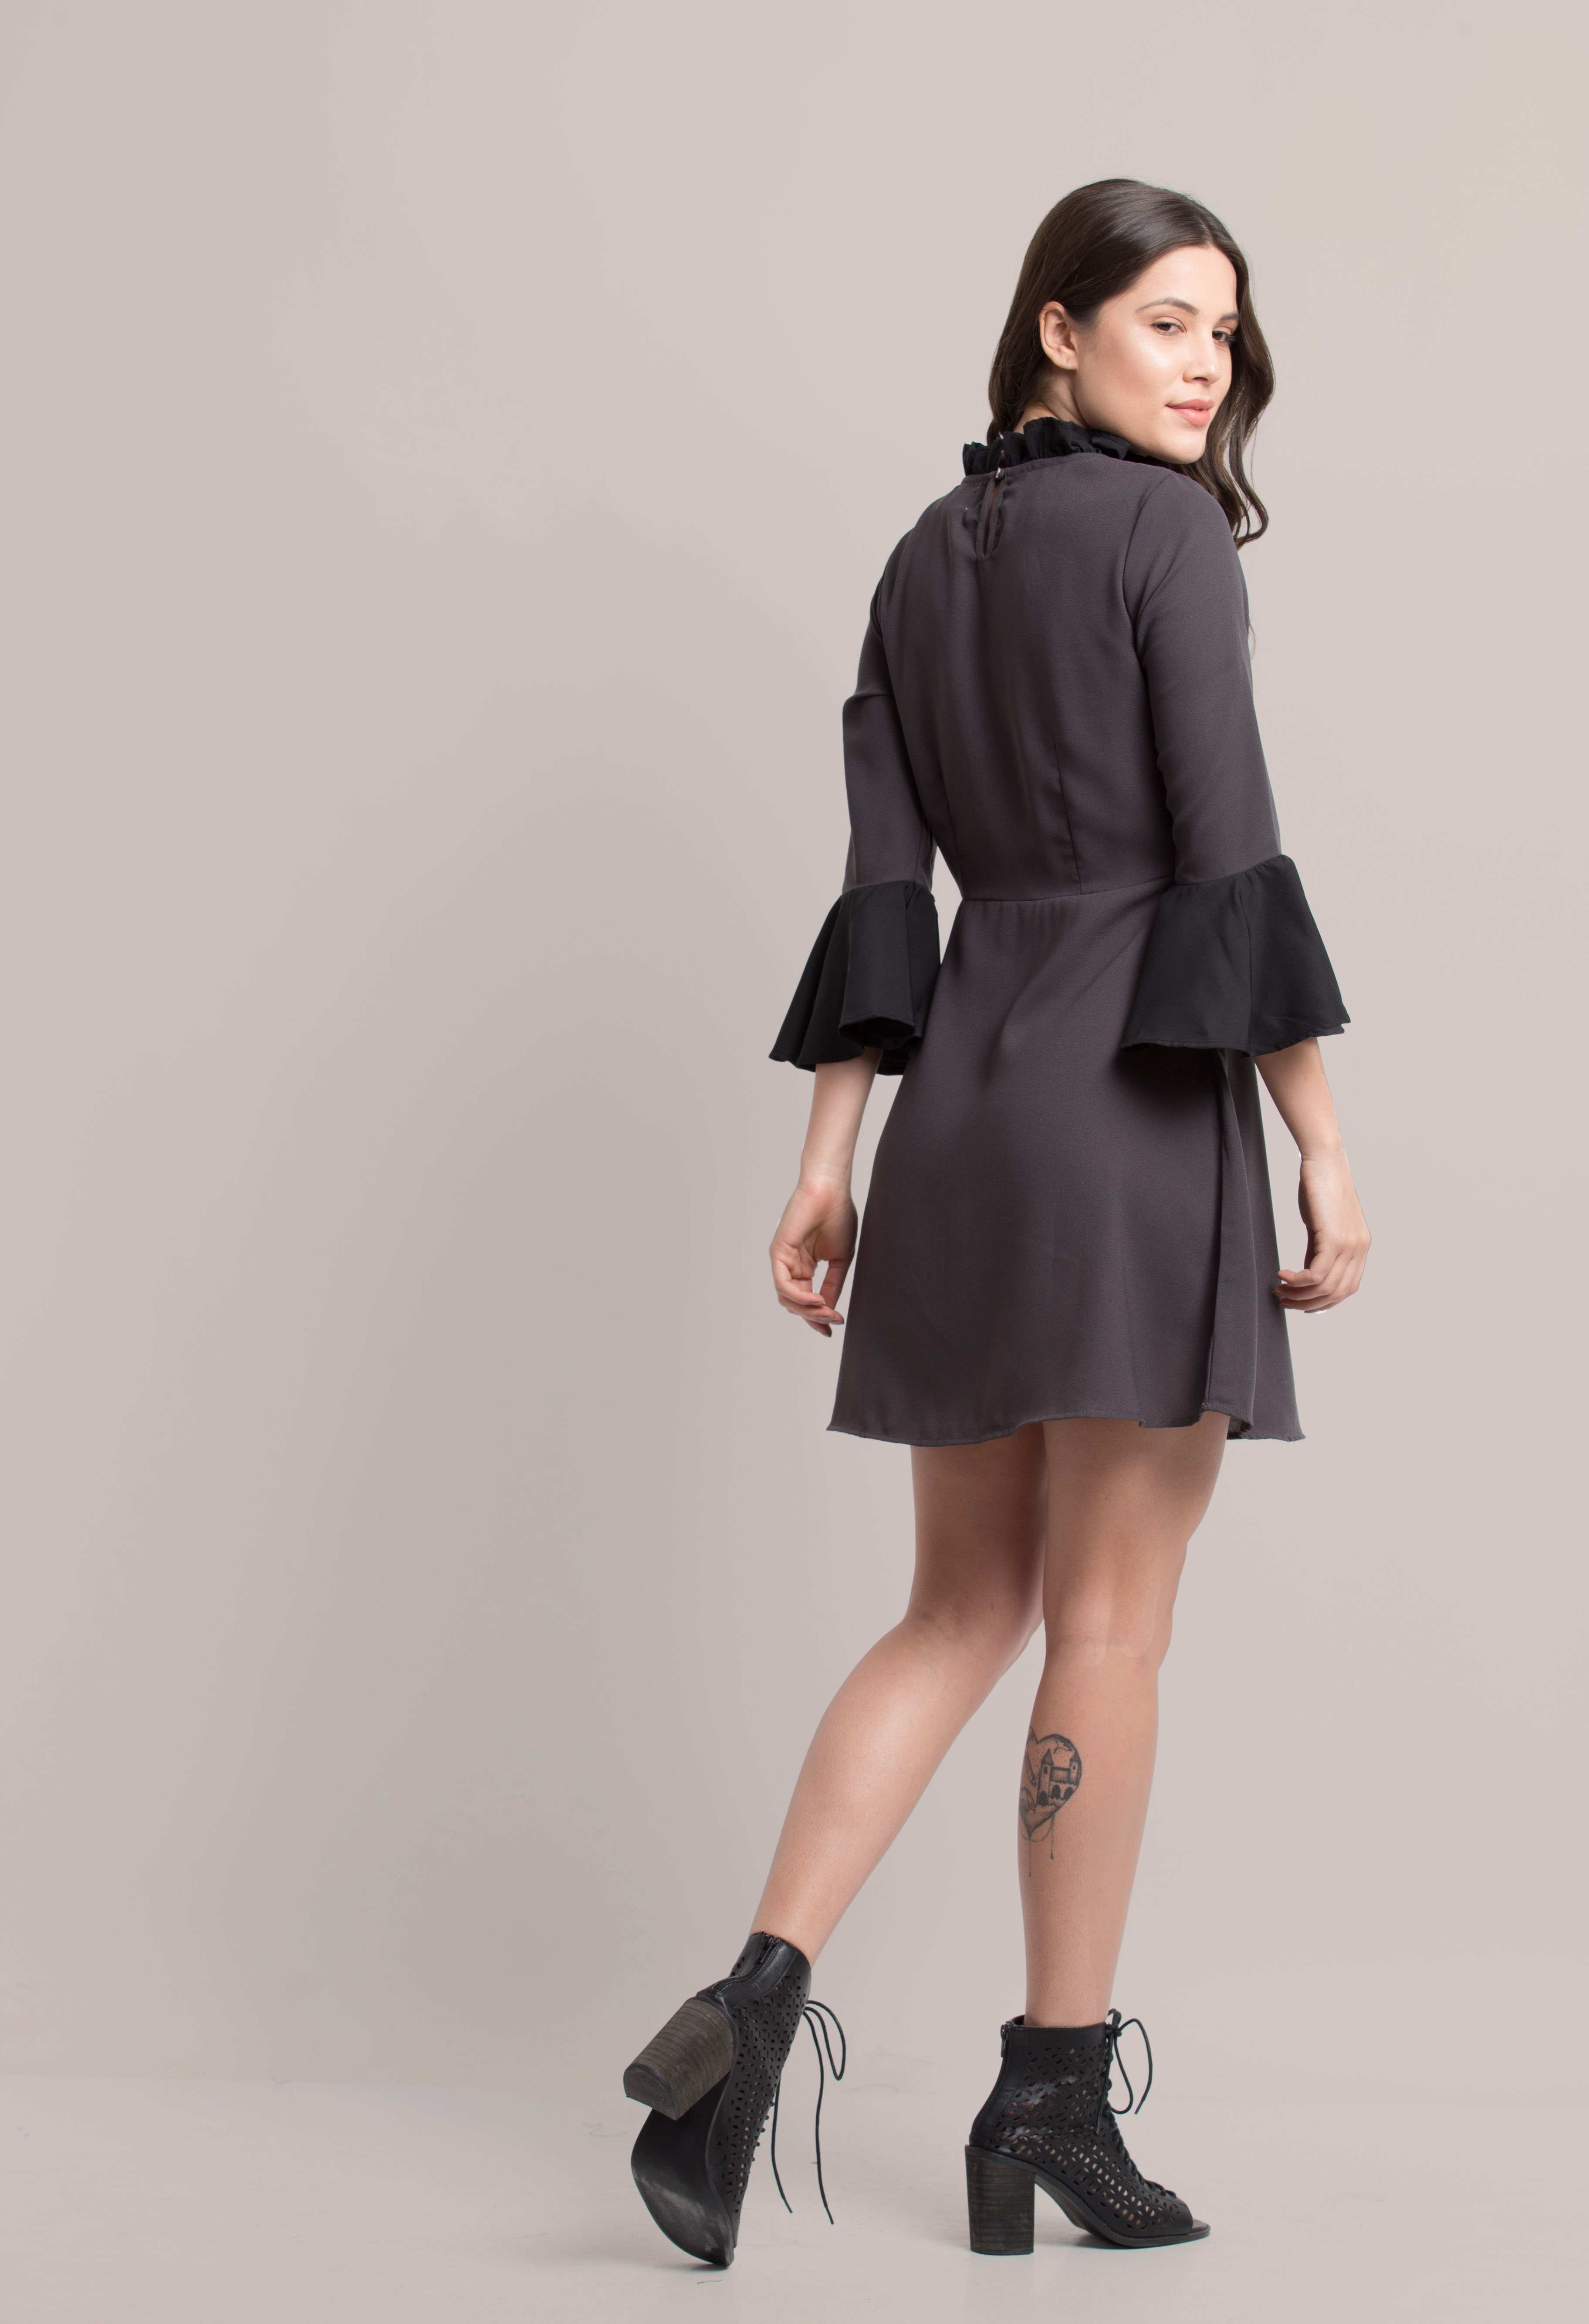 Folle Grey Black Solid Color Party Wear Dress